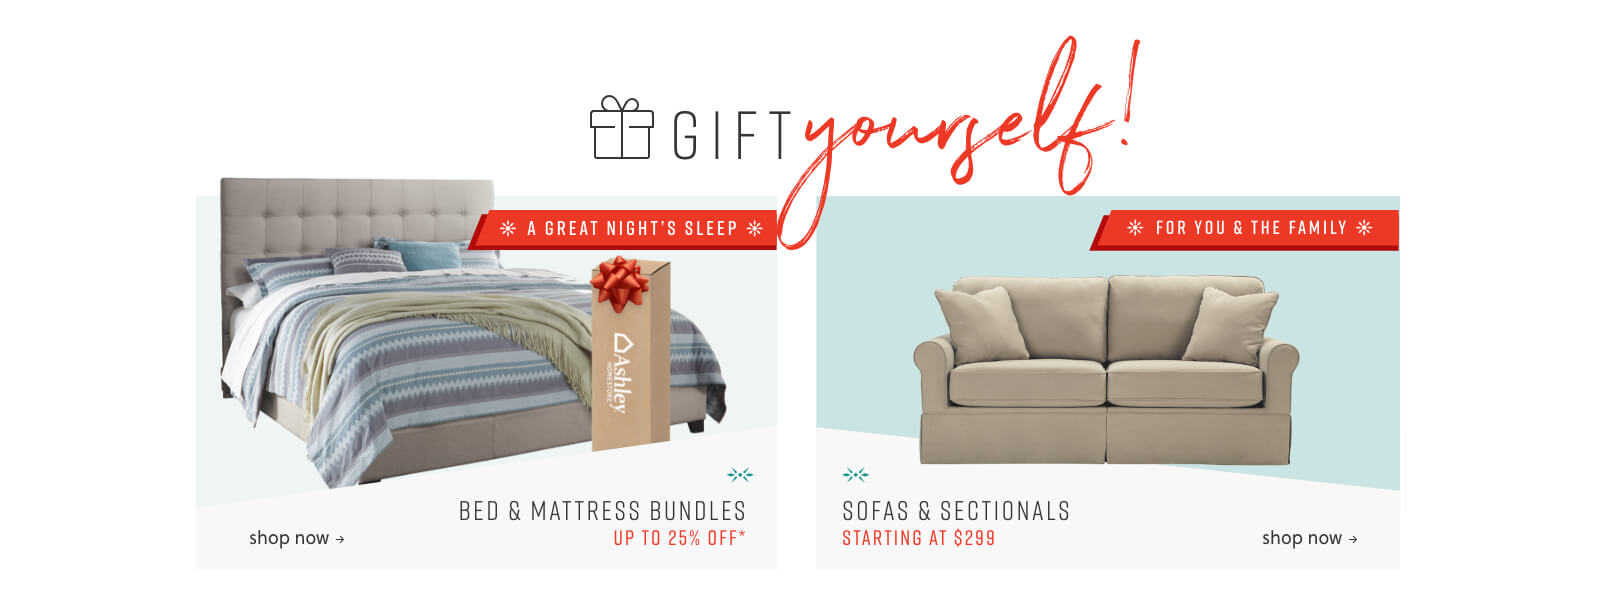 Bed And Mattress Bundles Sofas Sectionals